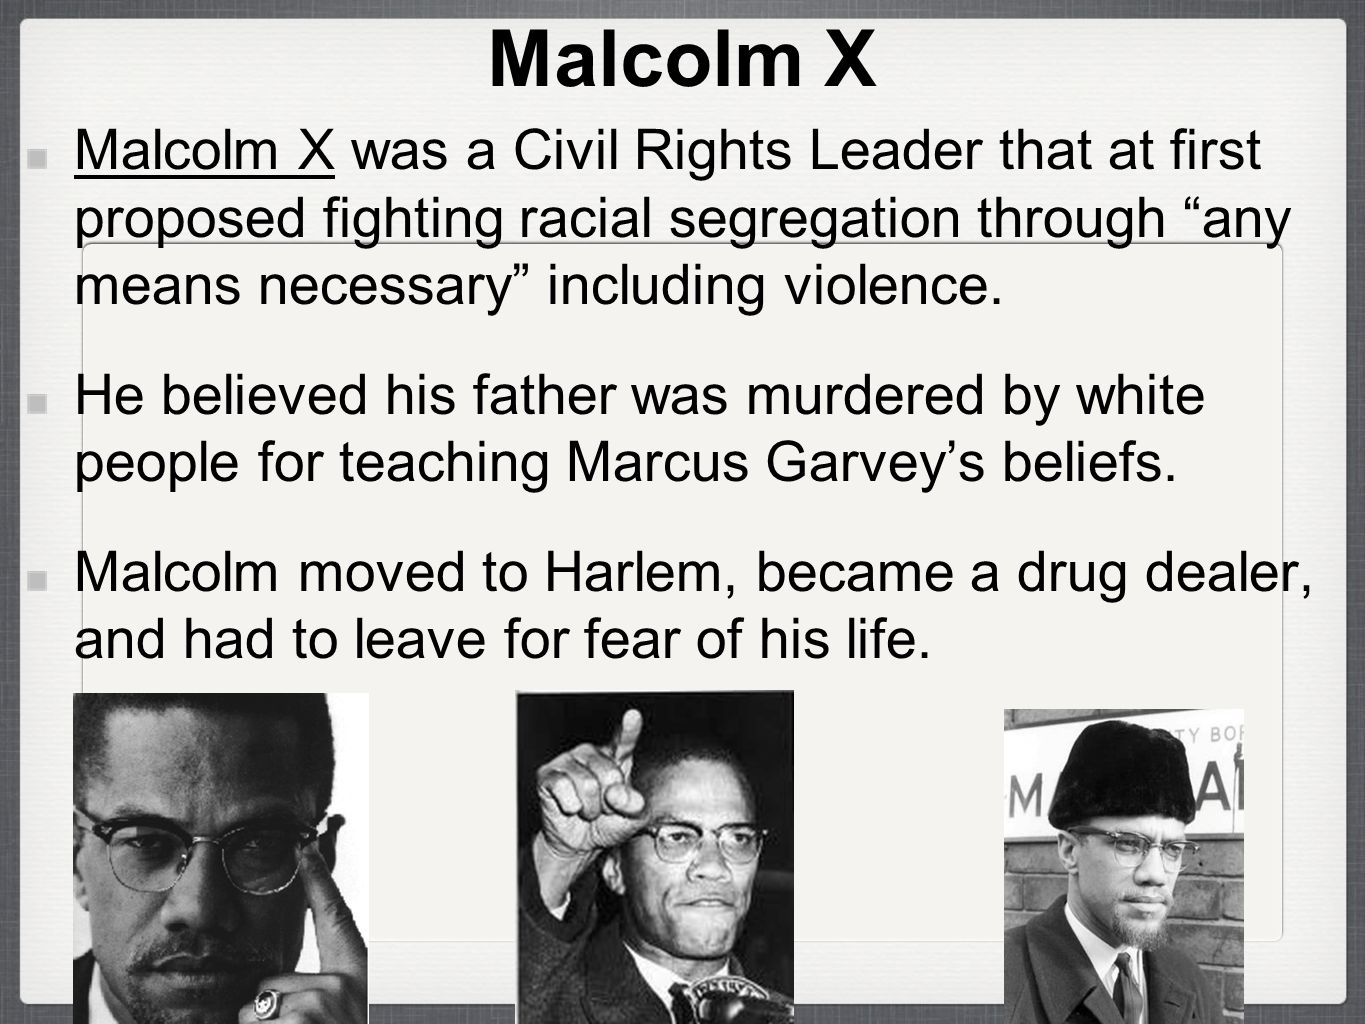 a biography of malcolm x a civil rights leader A brief article about malcolm x malcolm x biography malcolm x biography jesse jackson civil rights leader1941-birthplace.